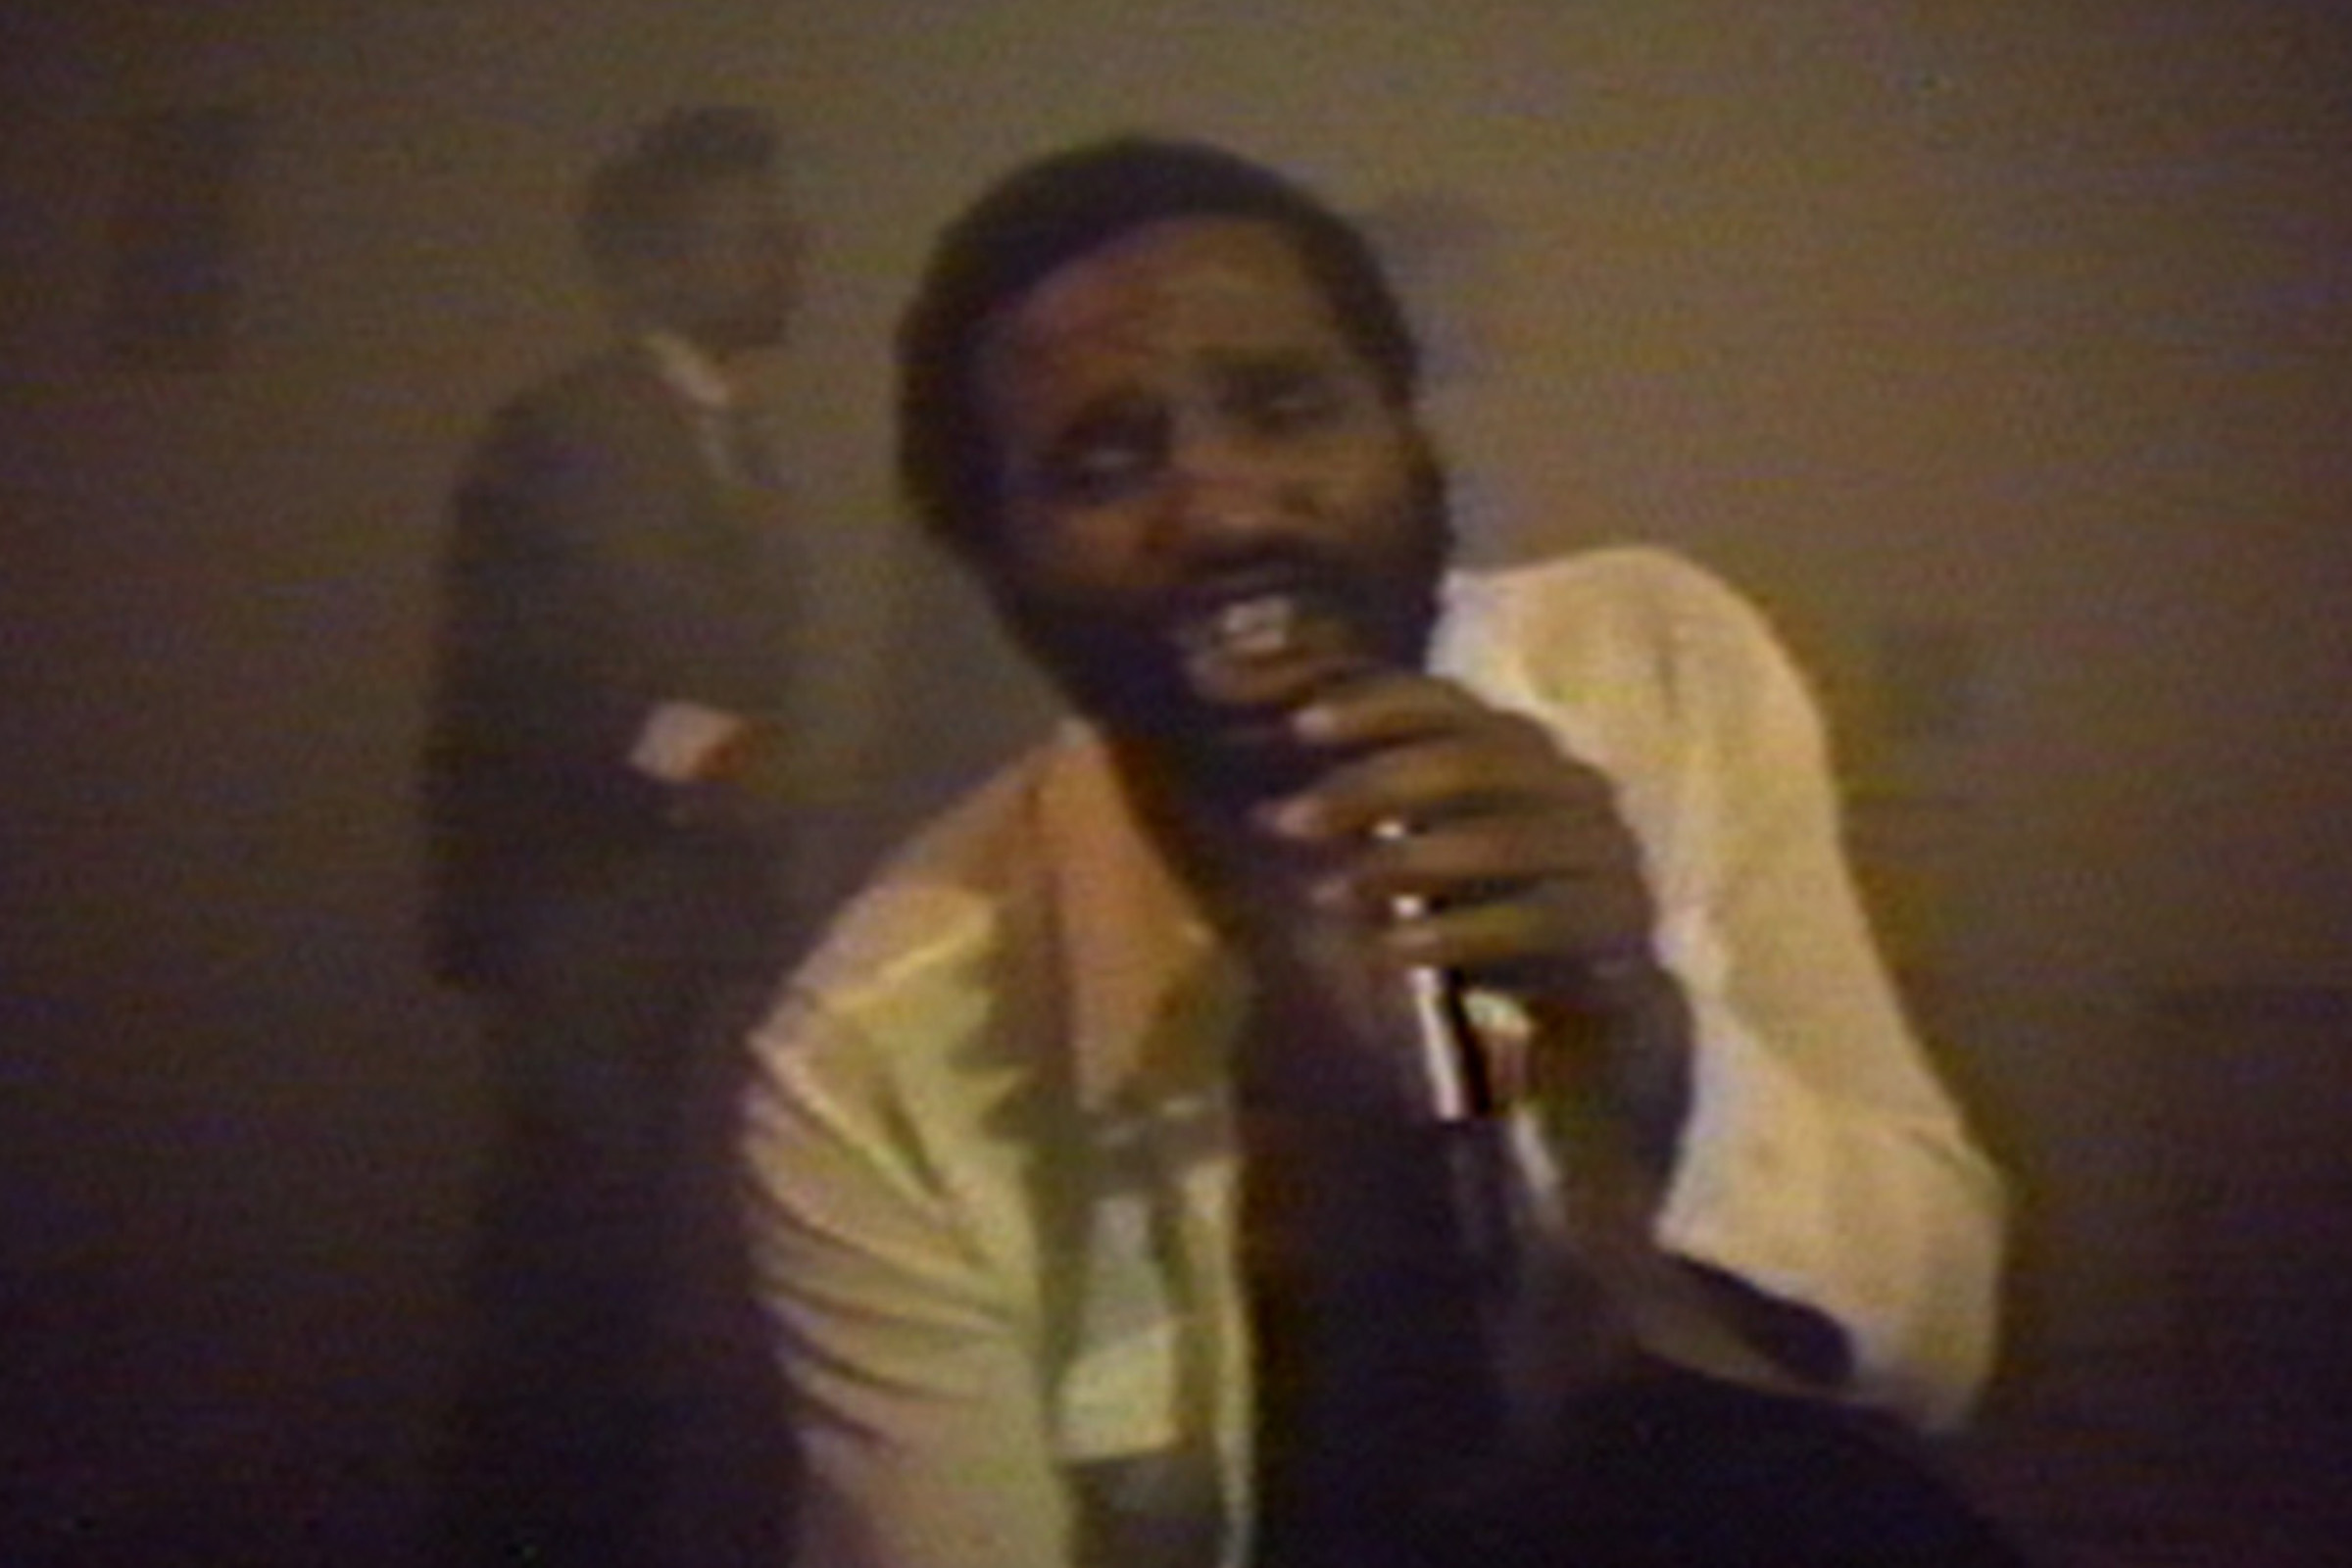 Video still from Two-Zone Transfer, showing Ulysses Jenkins singing into a handheld microphone.